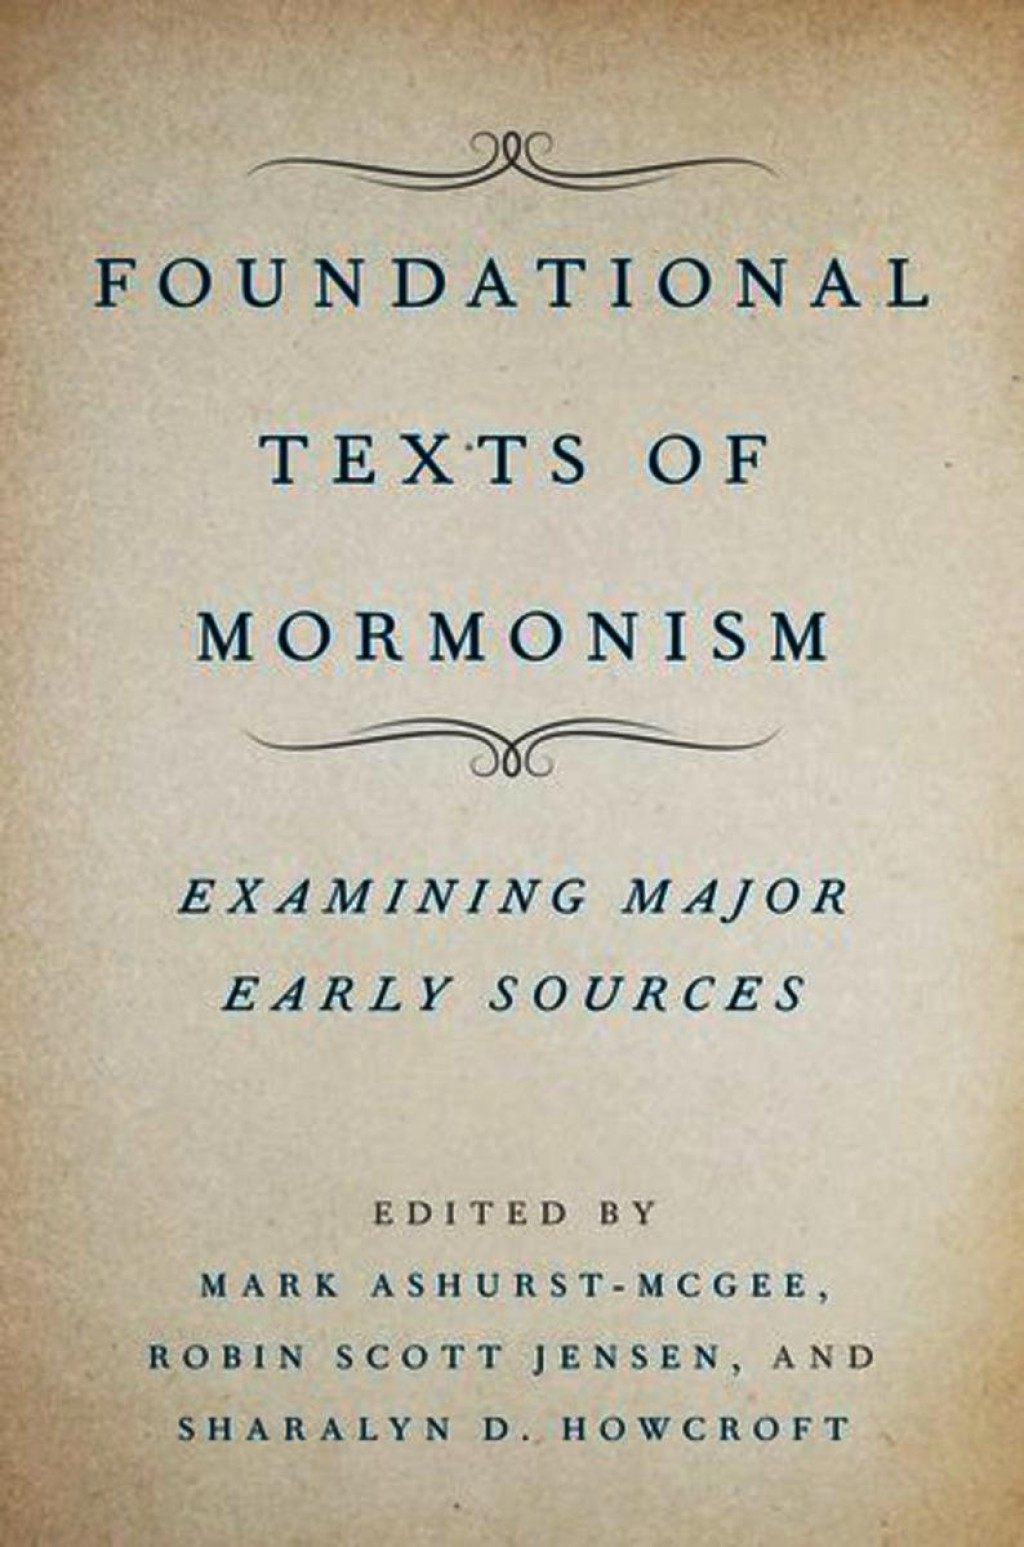 003 Essay Example Mormon Essays Exceptional Lds.org Book Of Abraham Mormonthink Large